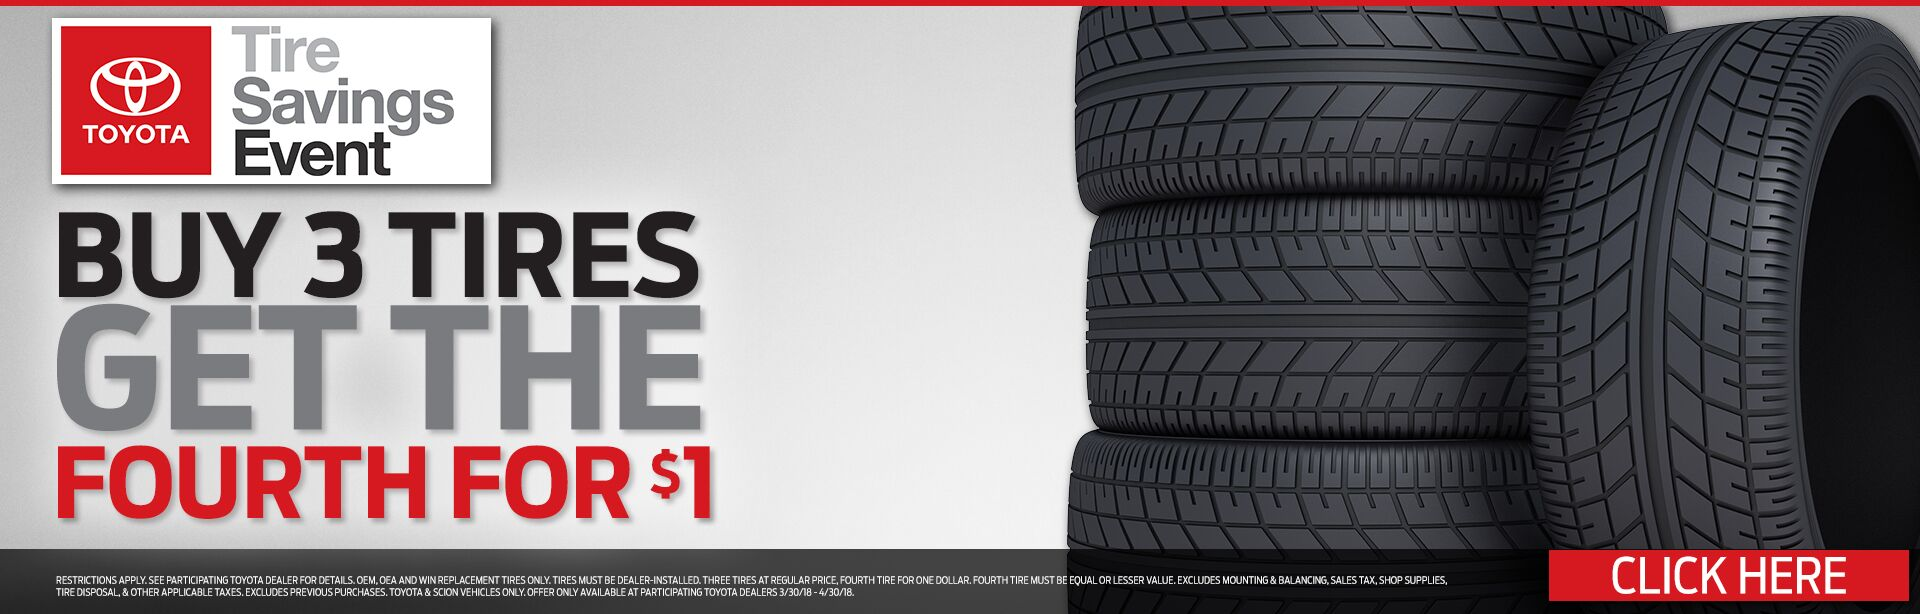 Tire Savings Event